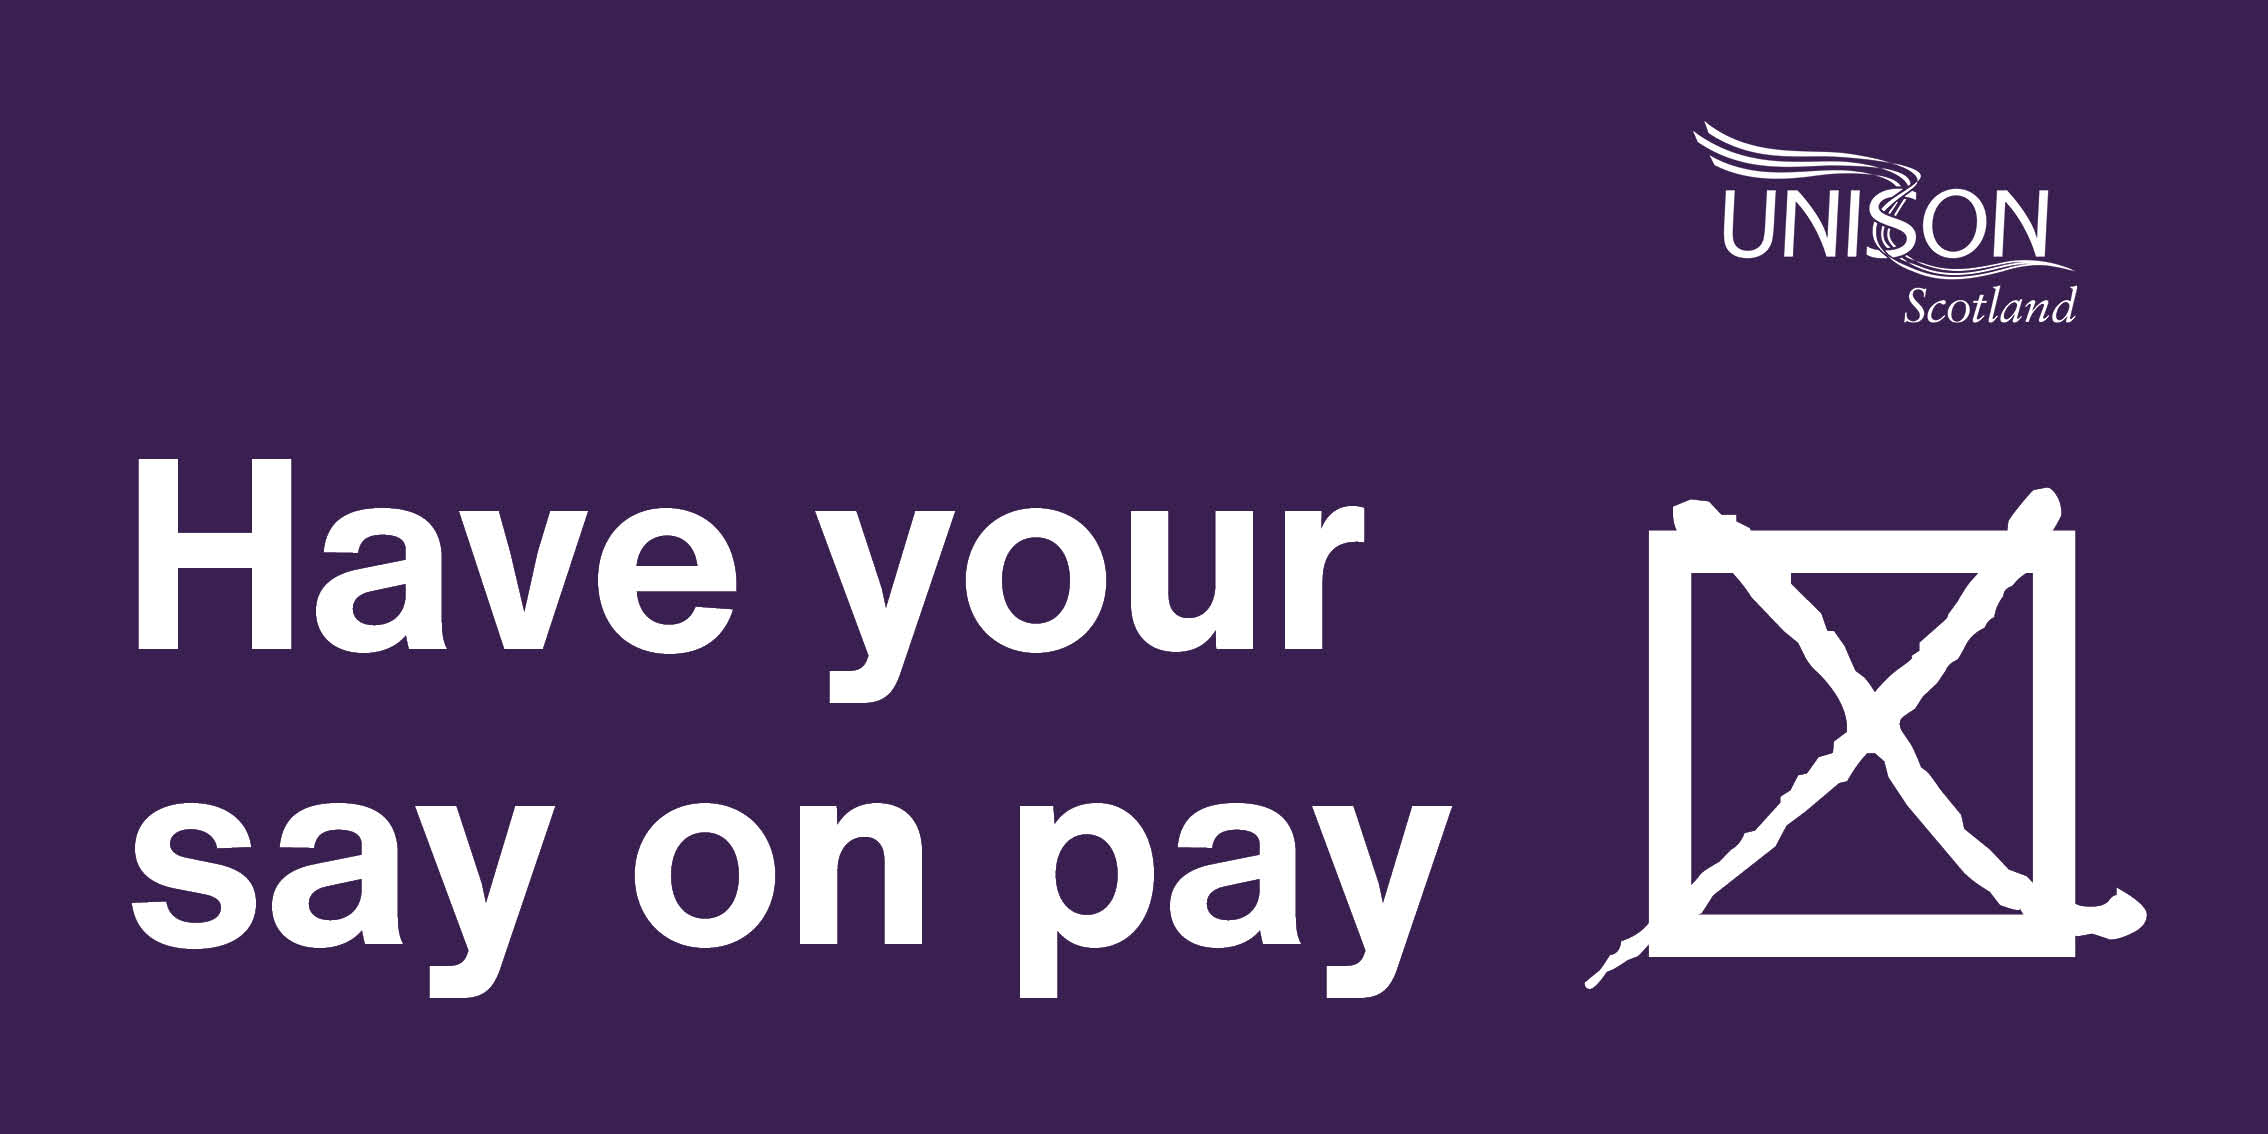 Vote to have your say on pay